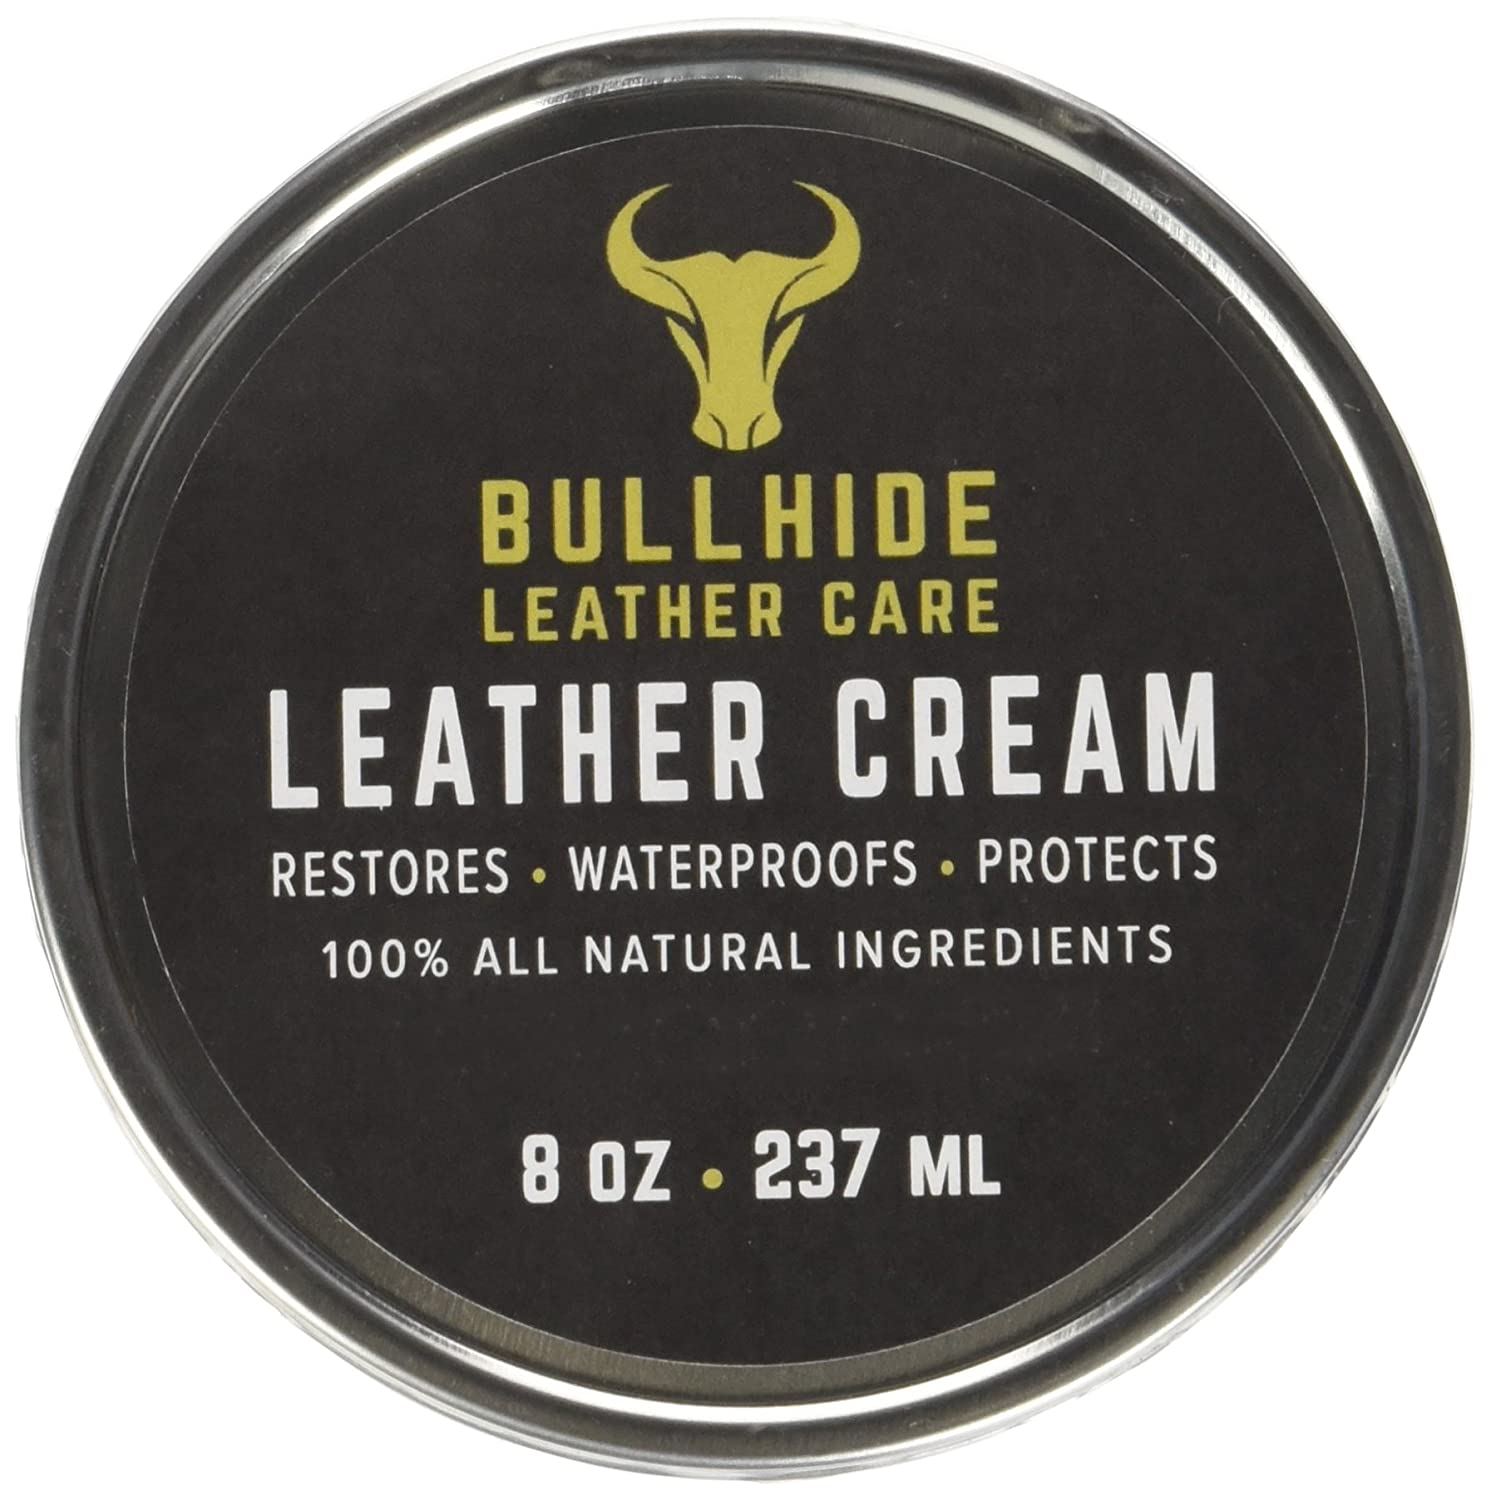 Bullhide Leather Care X00140RSU1-8oz Leather Cream, 8 oz DropForge Leather Care